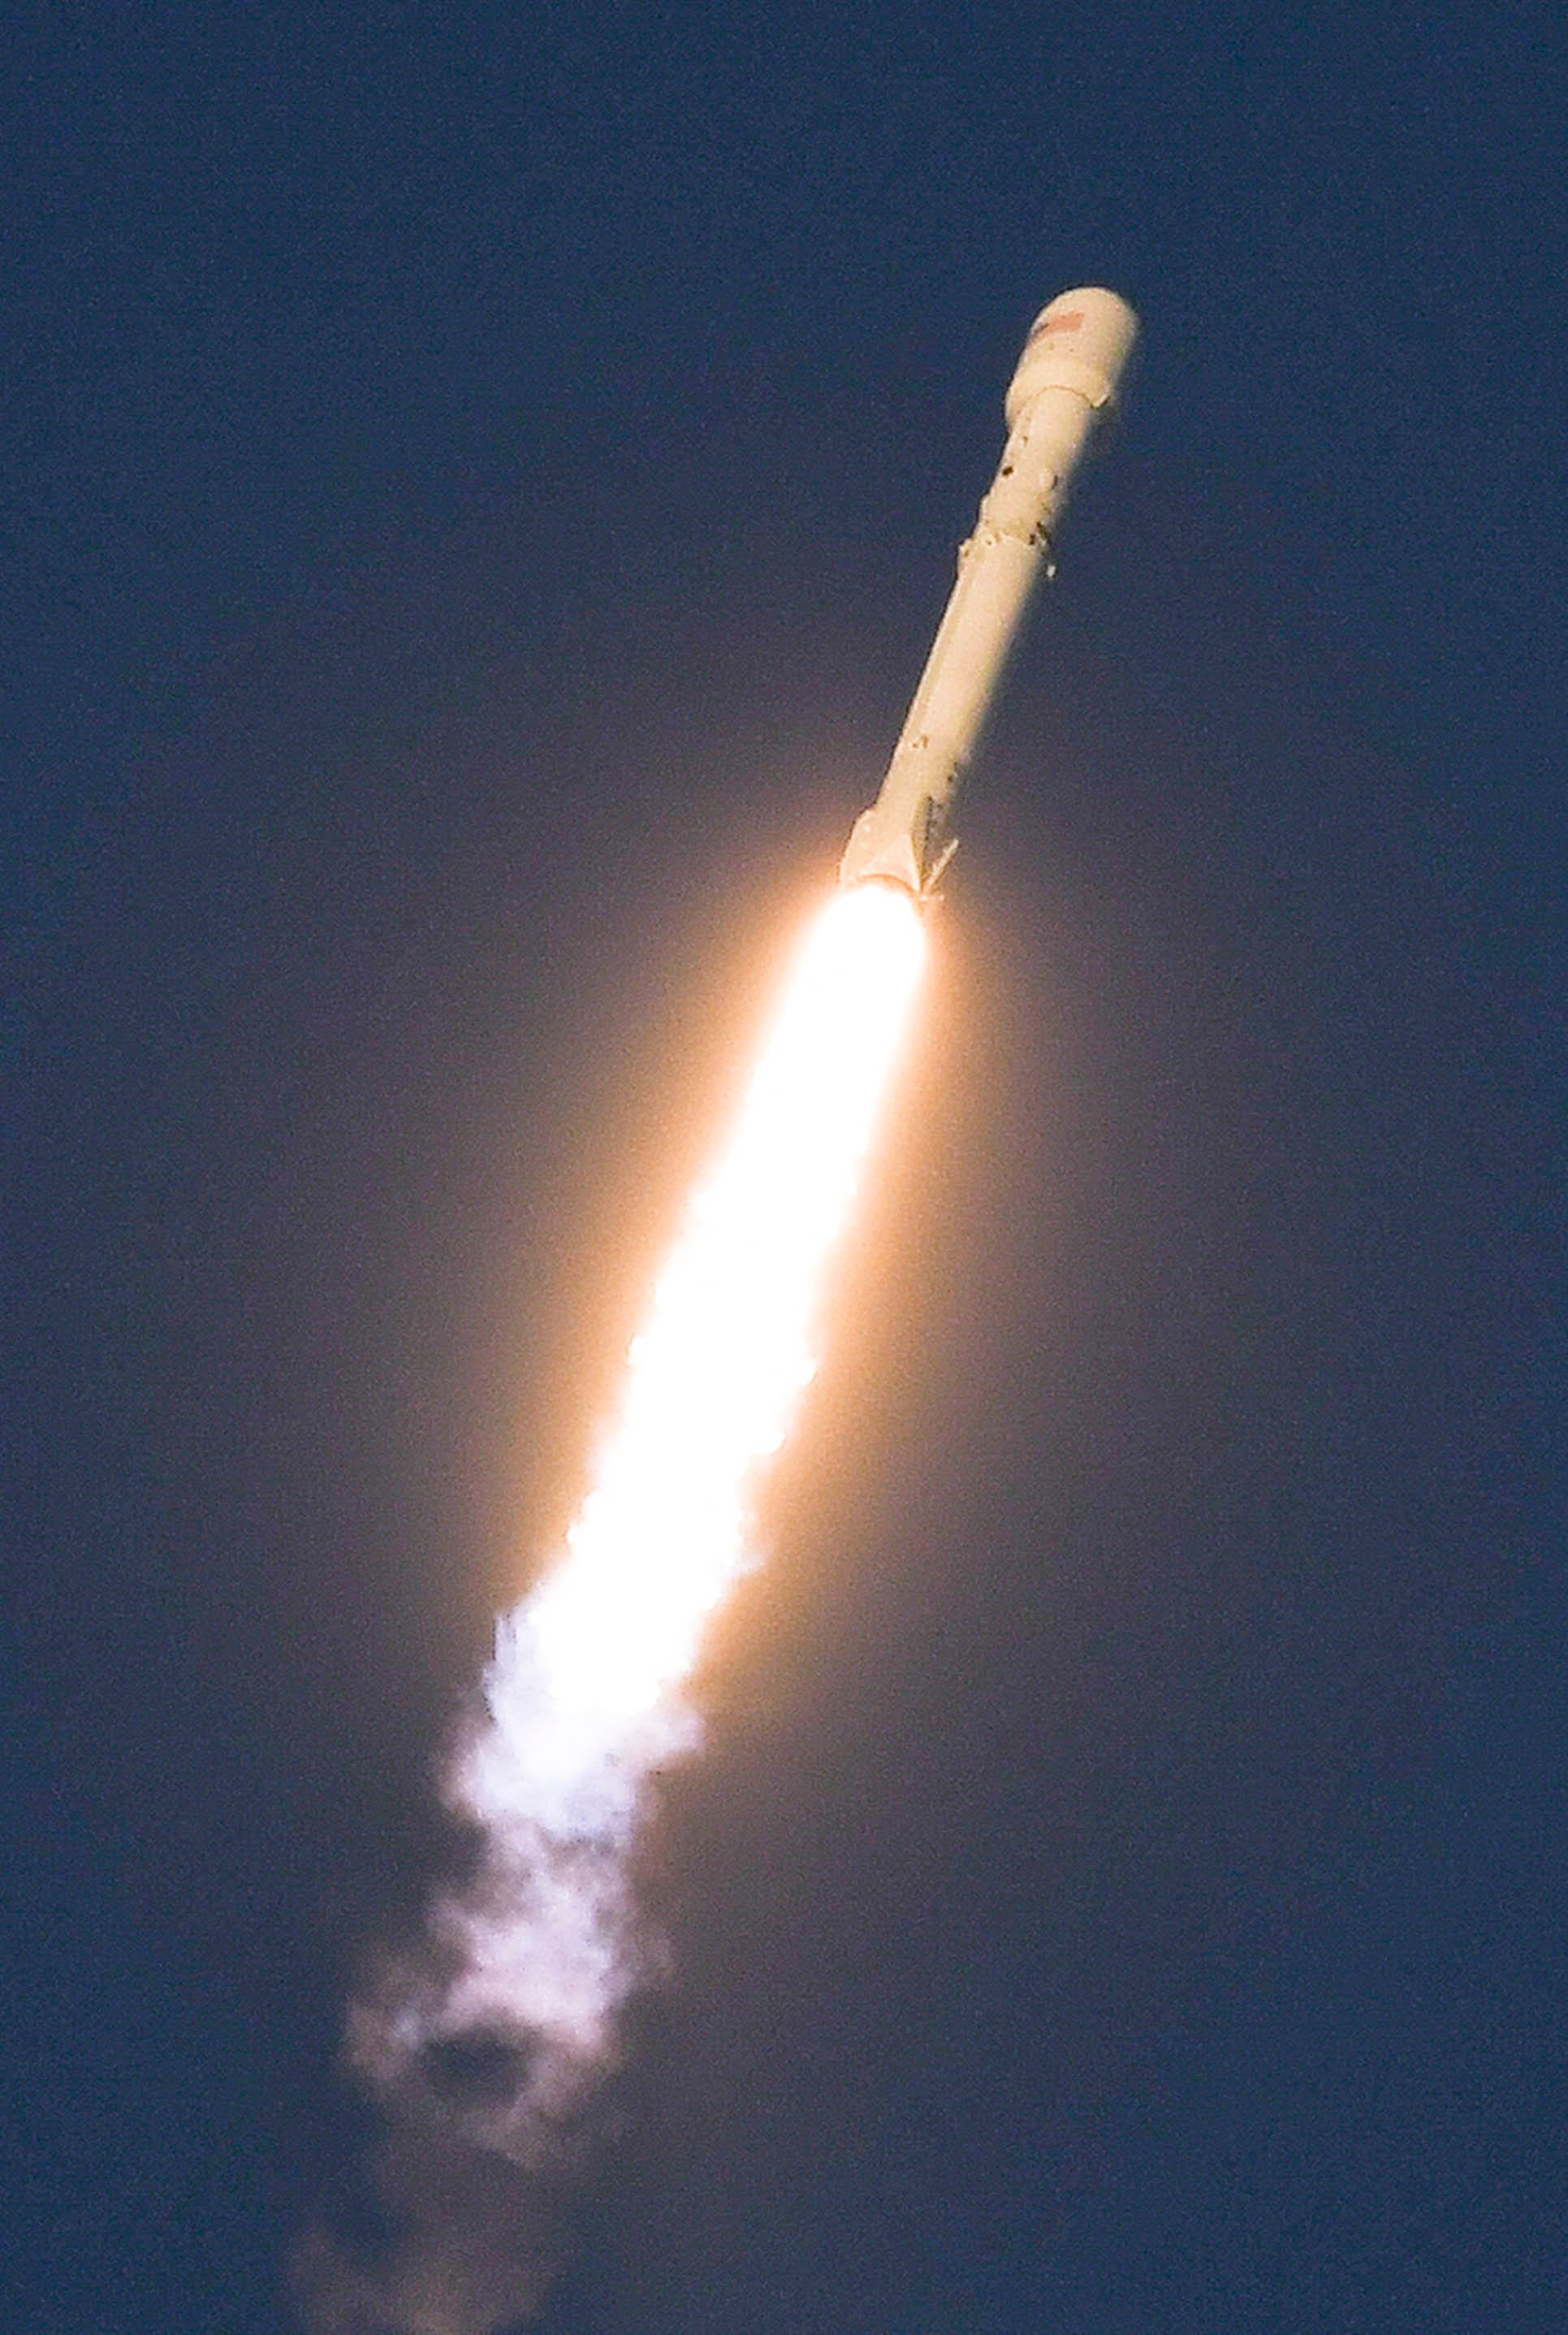 636433647301990453-crb101117-spacex-6- How to watch secretive SpaceX Falcon 9 launch from KSC and landing